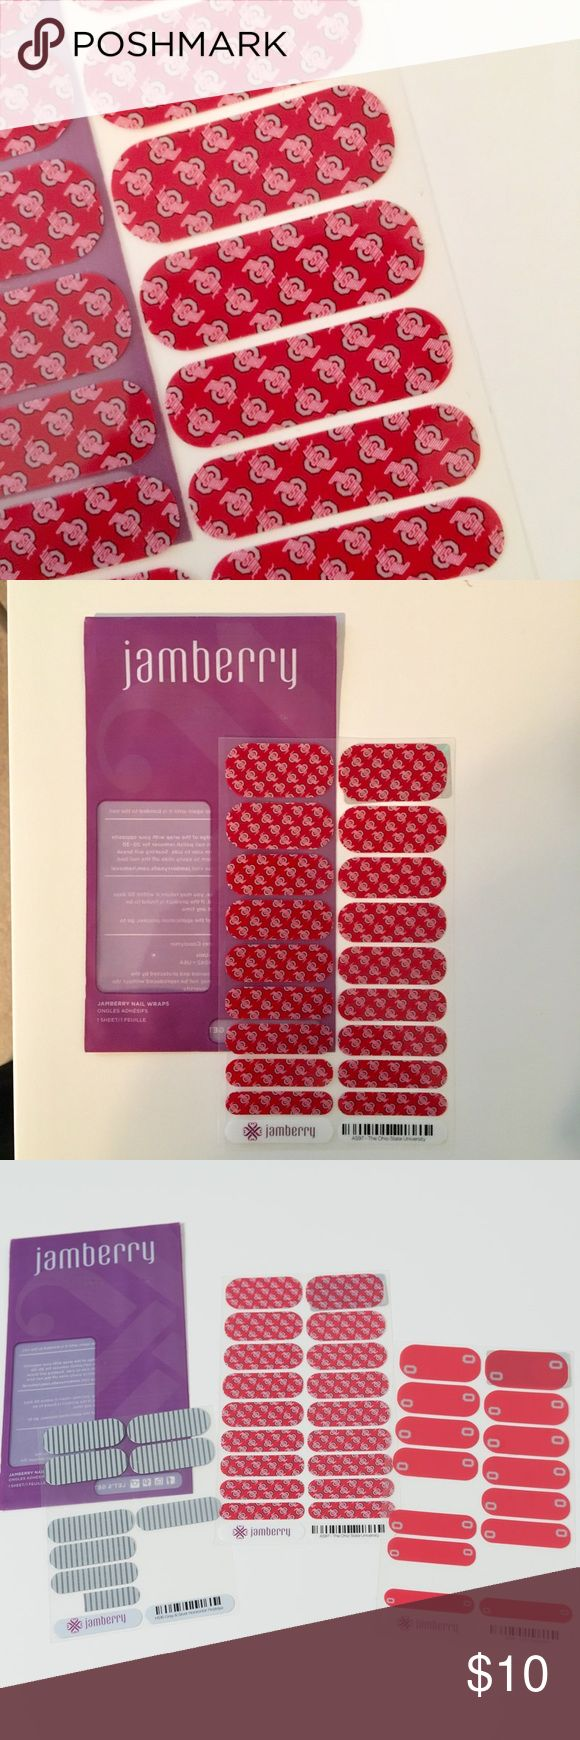 THE Ohio State University Jamberry Nail Wraps NEW Buckeye fans here's something fun for game day! NWT OSU Jambery nail wraps. I'm also throwing in a partial sheet of OSU Buckeyes wraps and the gray and silver horizontal pinstripe. Jamberry Makeup